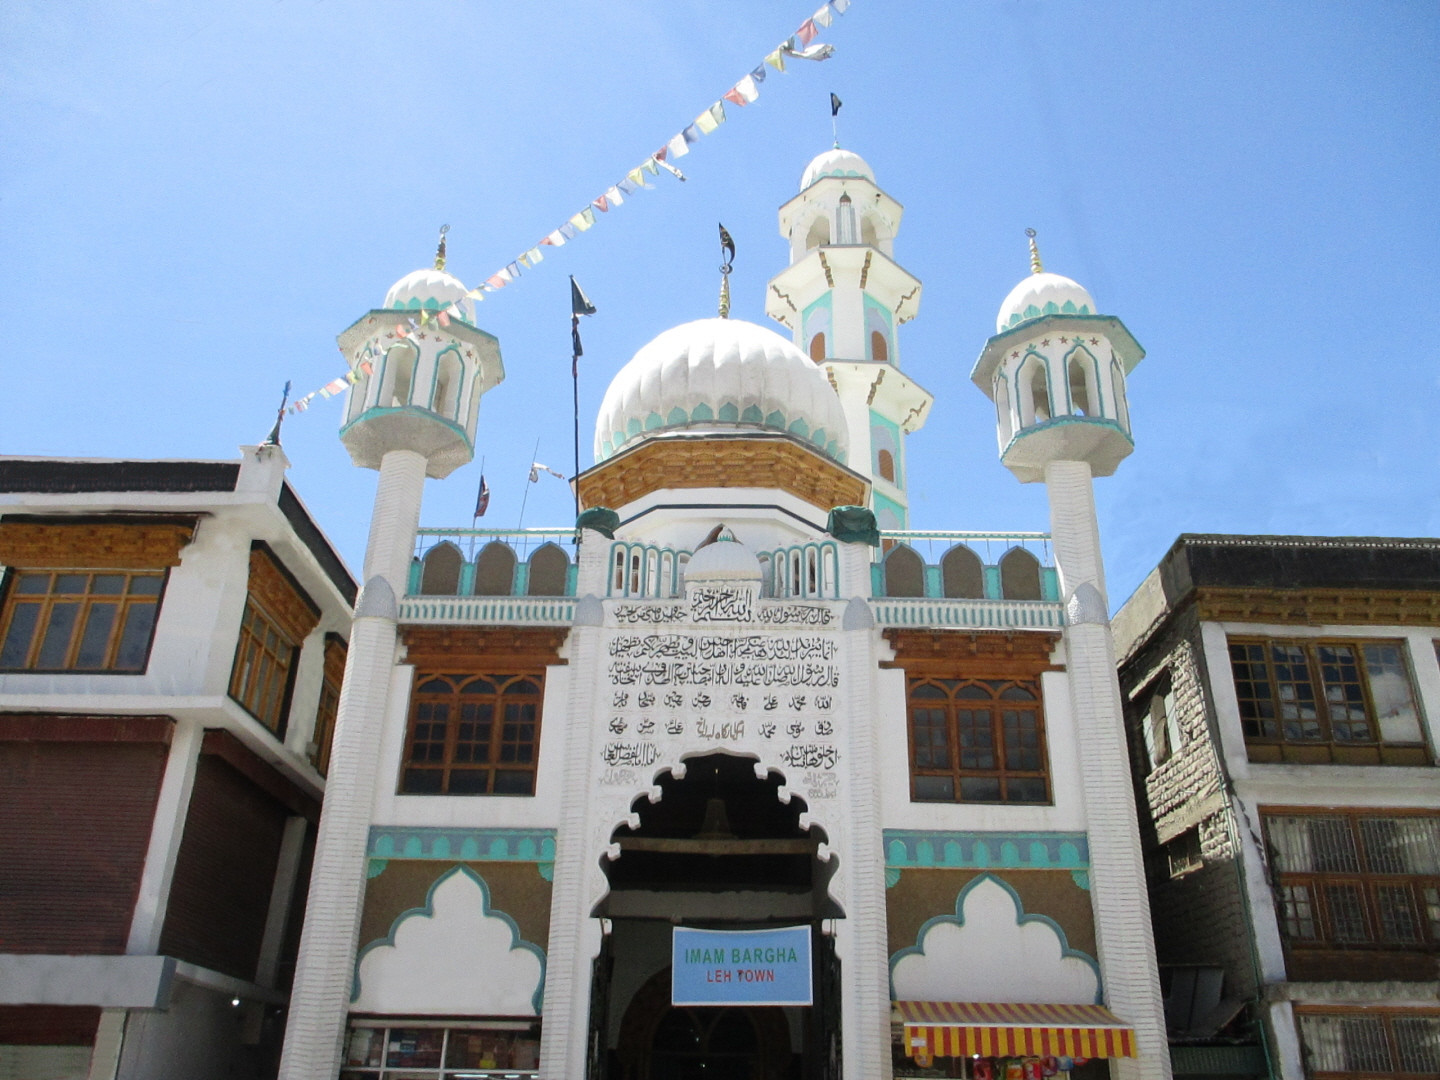 Shrine of Imam Bargha  (Islamic, Shi'ah) Especially for Remembrance of Hazrat Huzzain- Leh, Ladakh - India